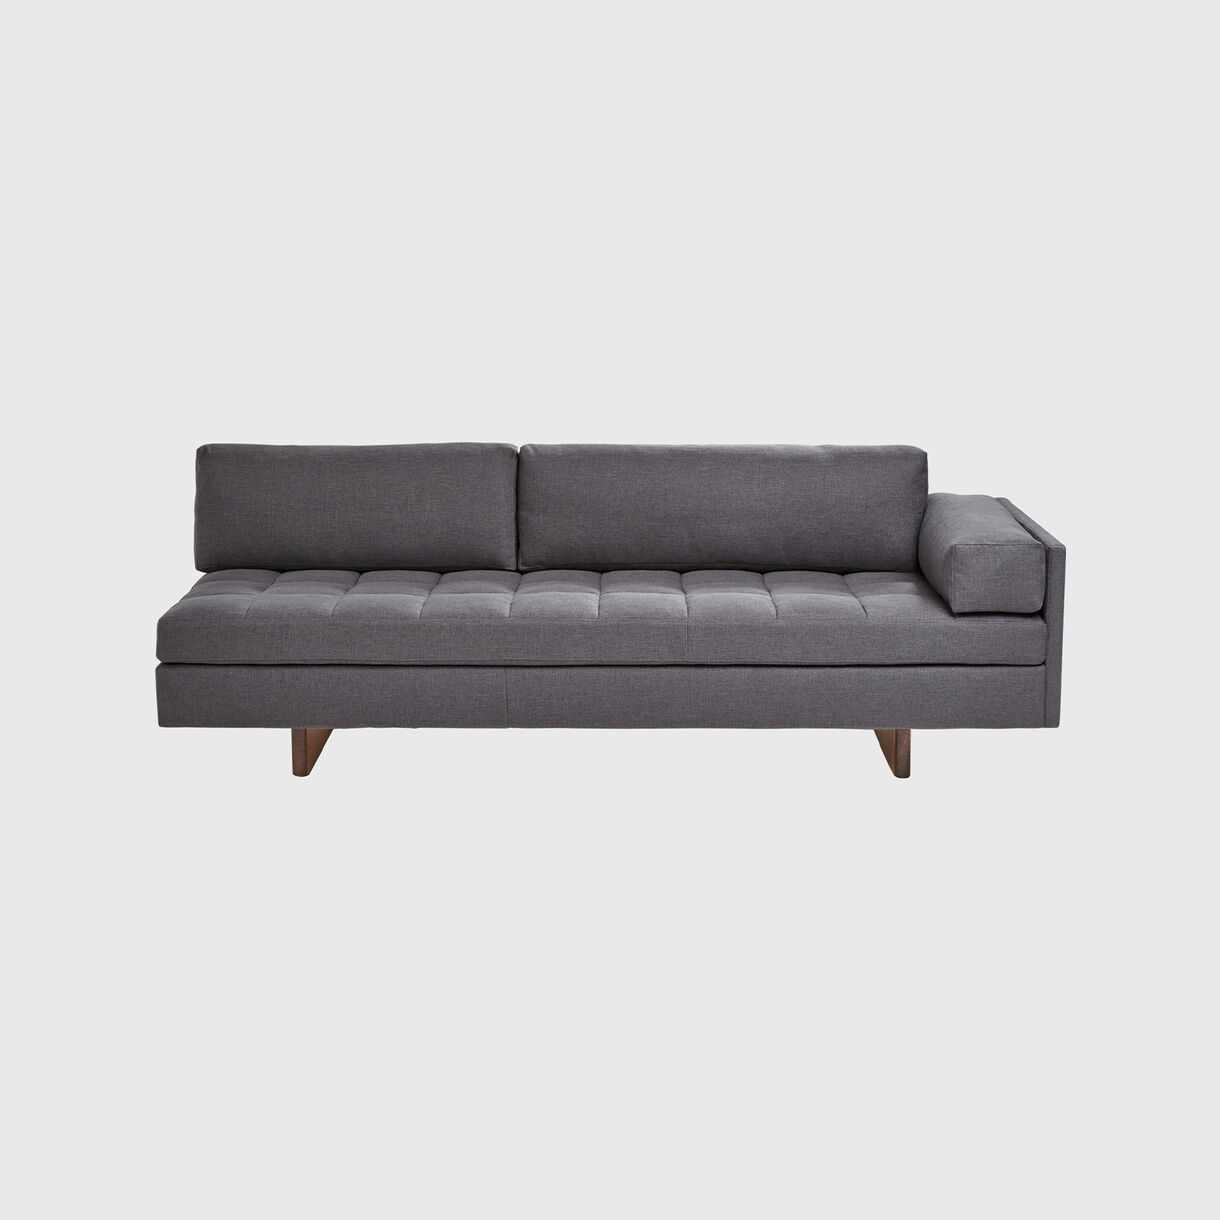 Asymmetric Sofa